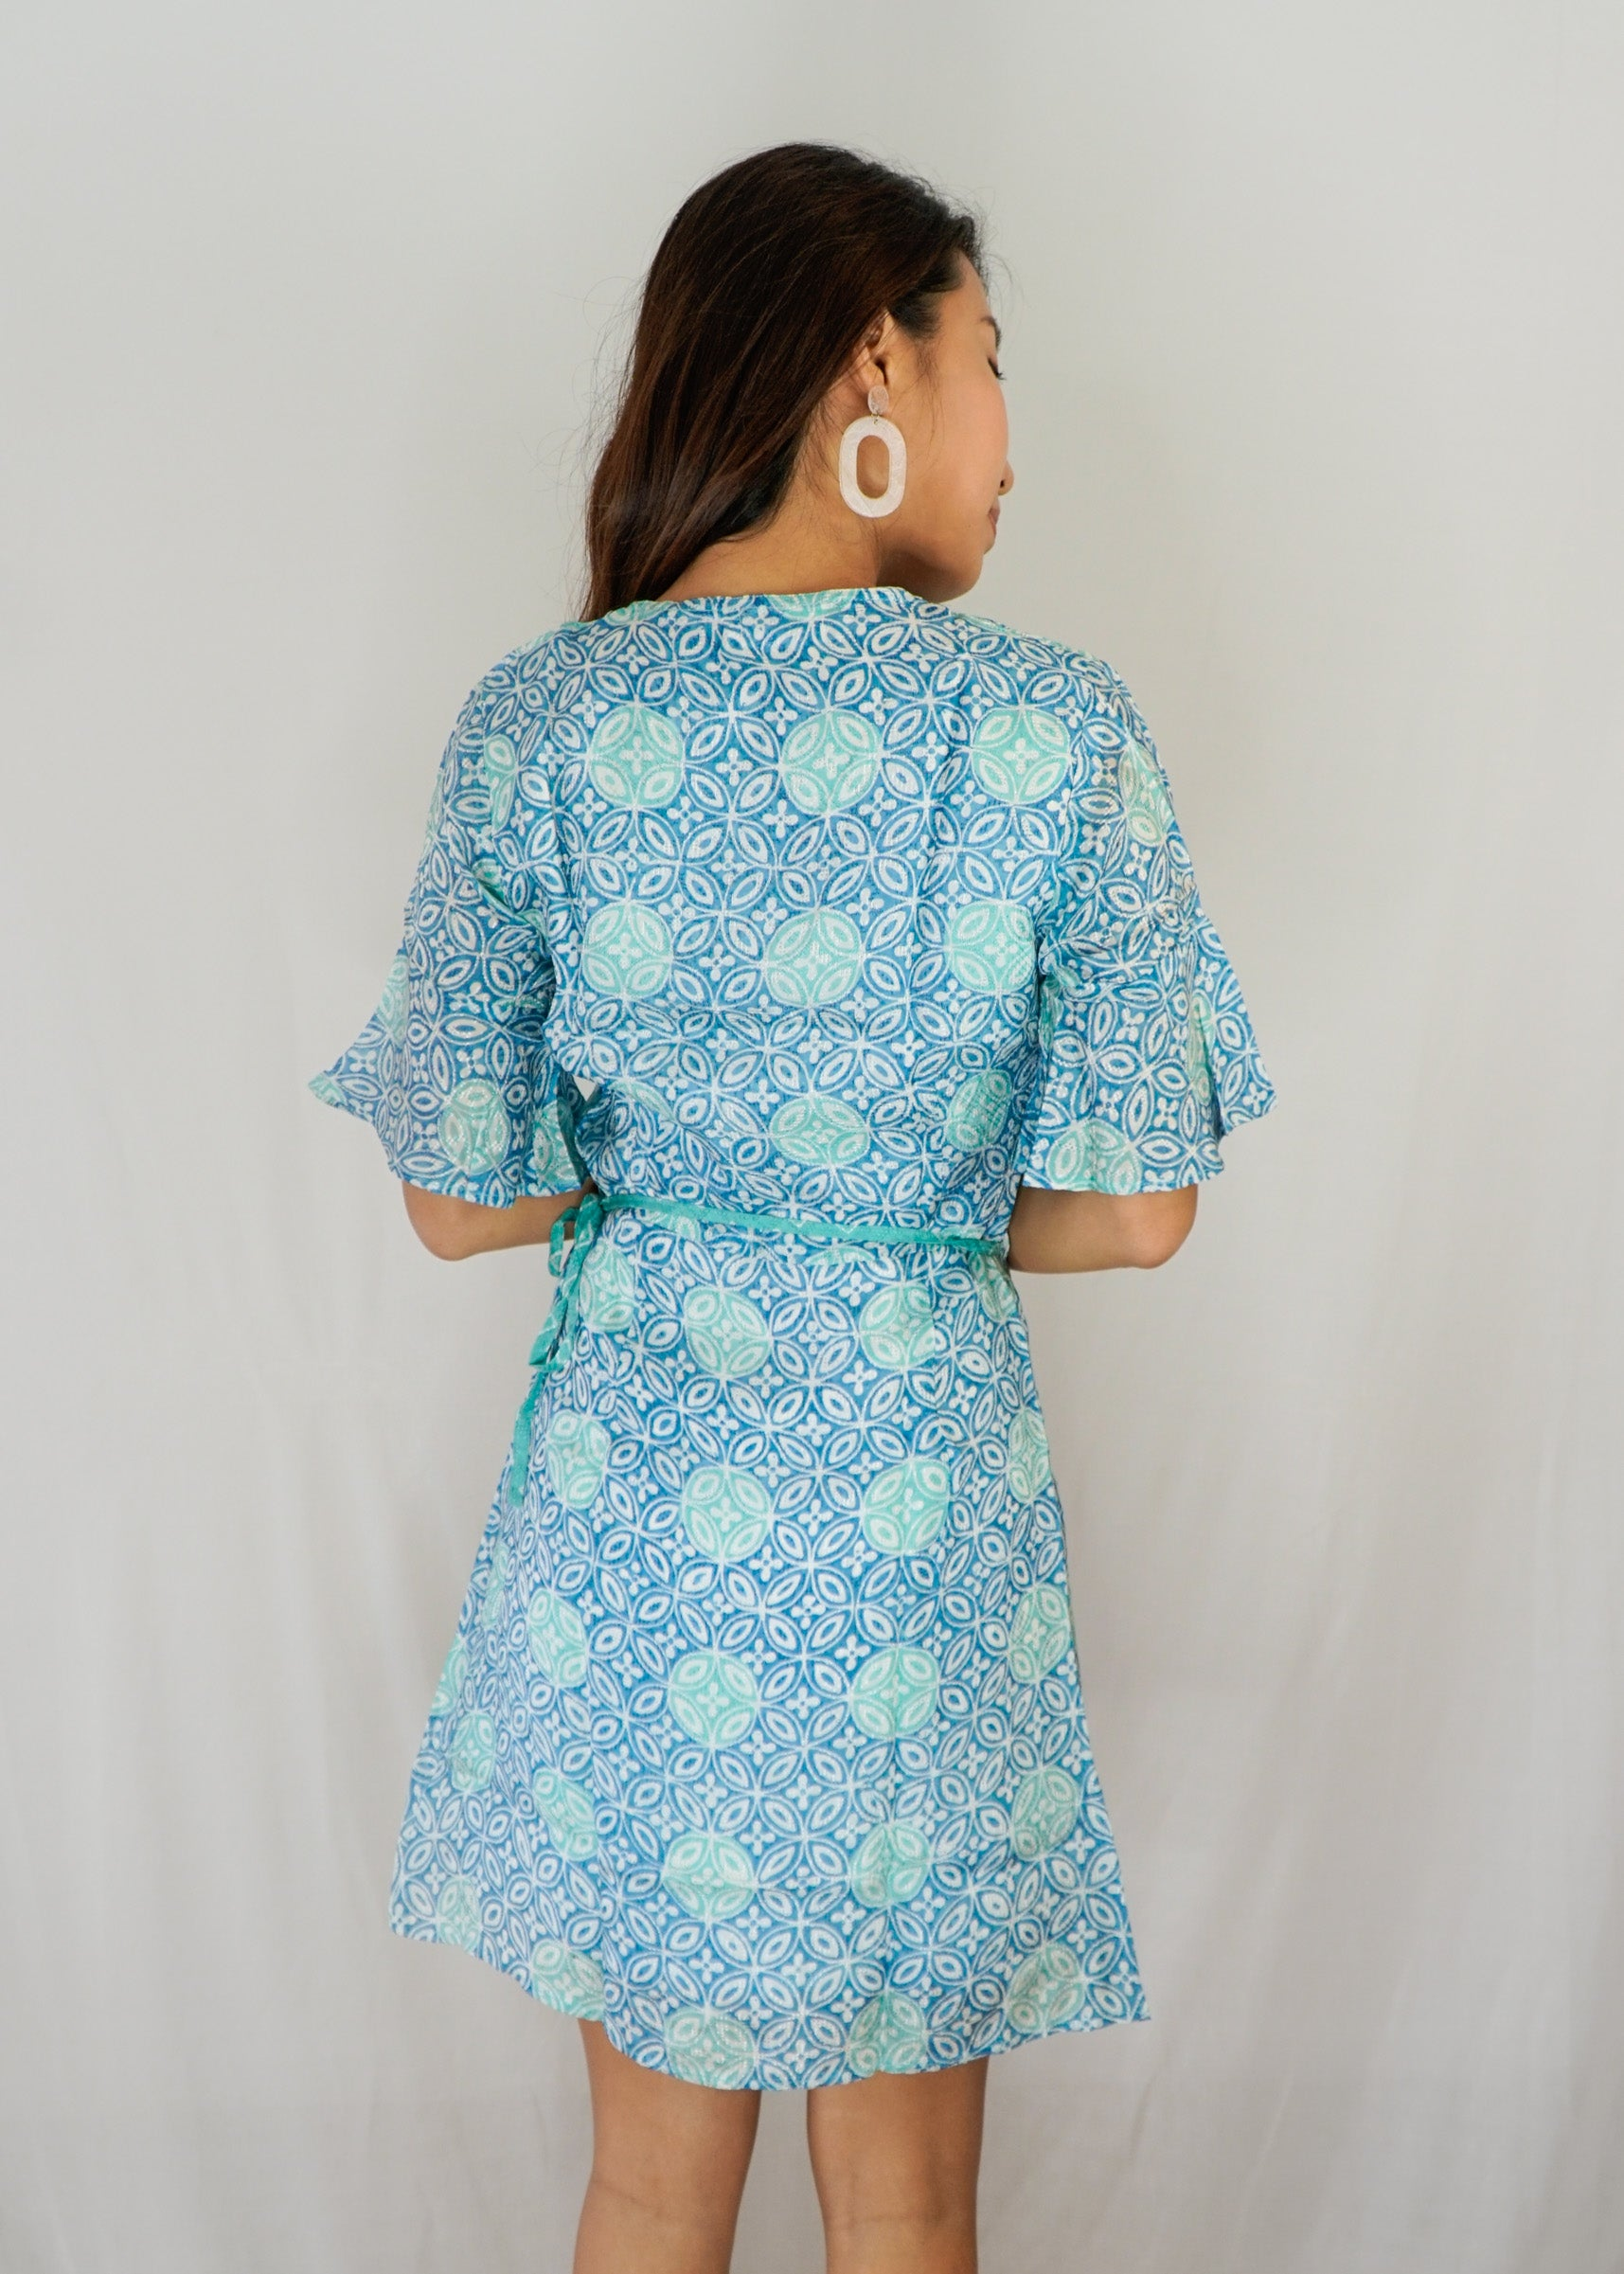 Magnolia Batik Wrap Dress in Turquoise Kawung